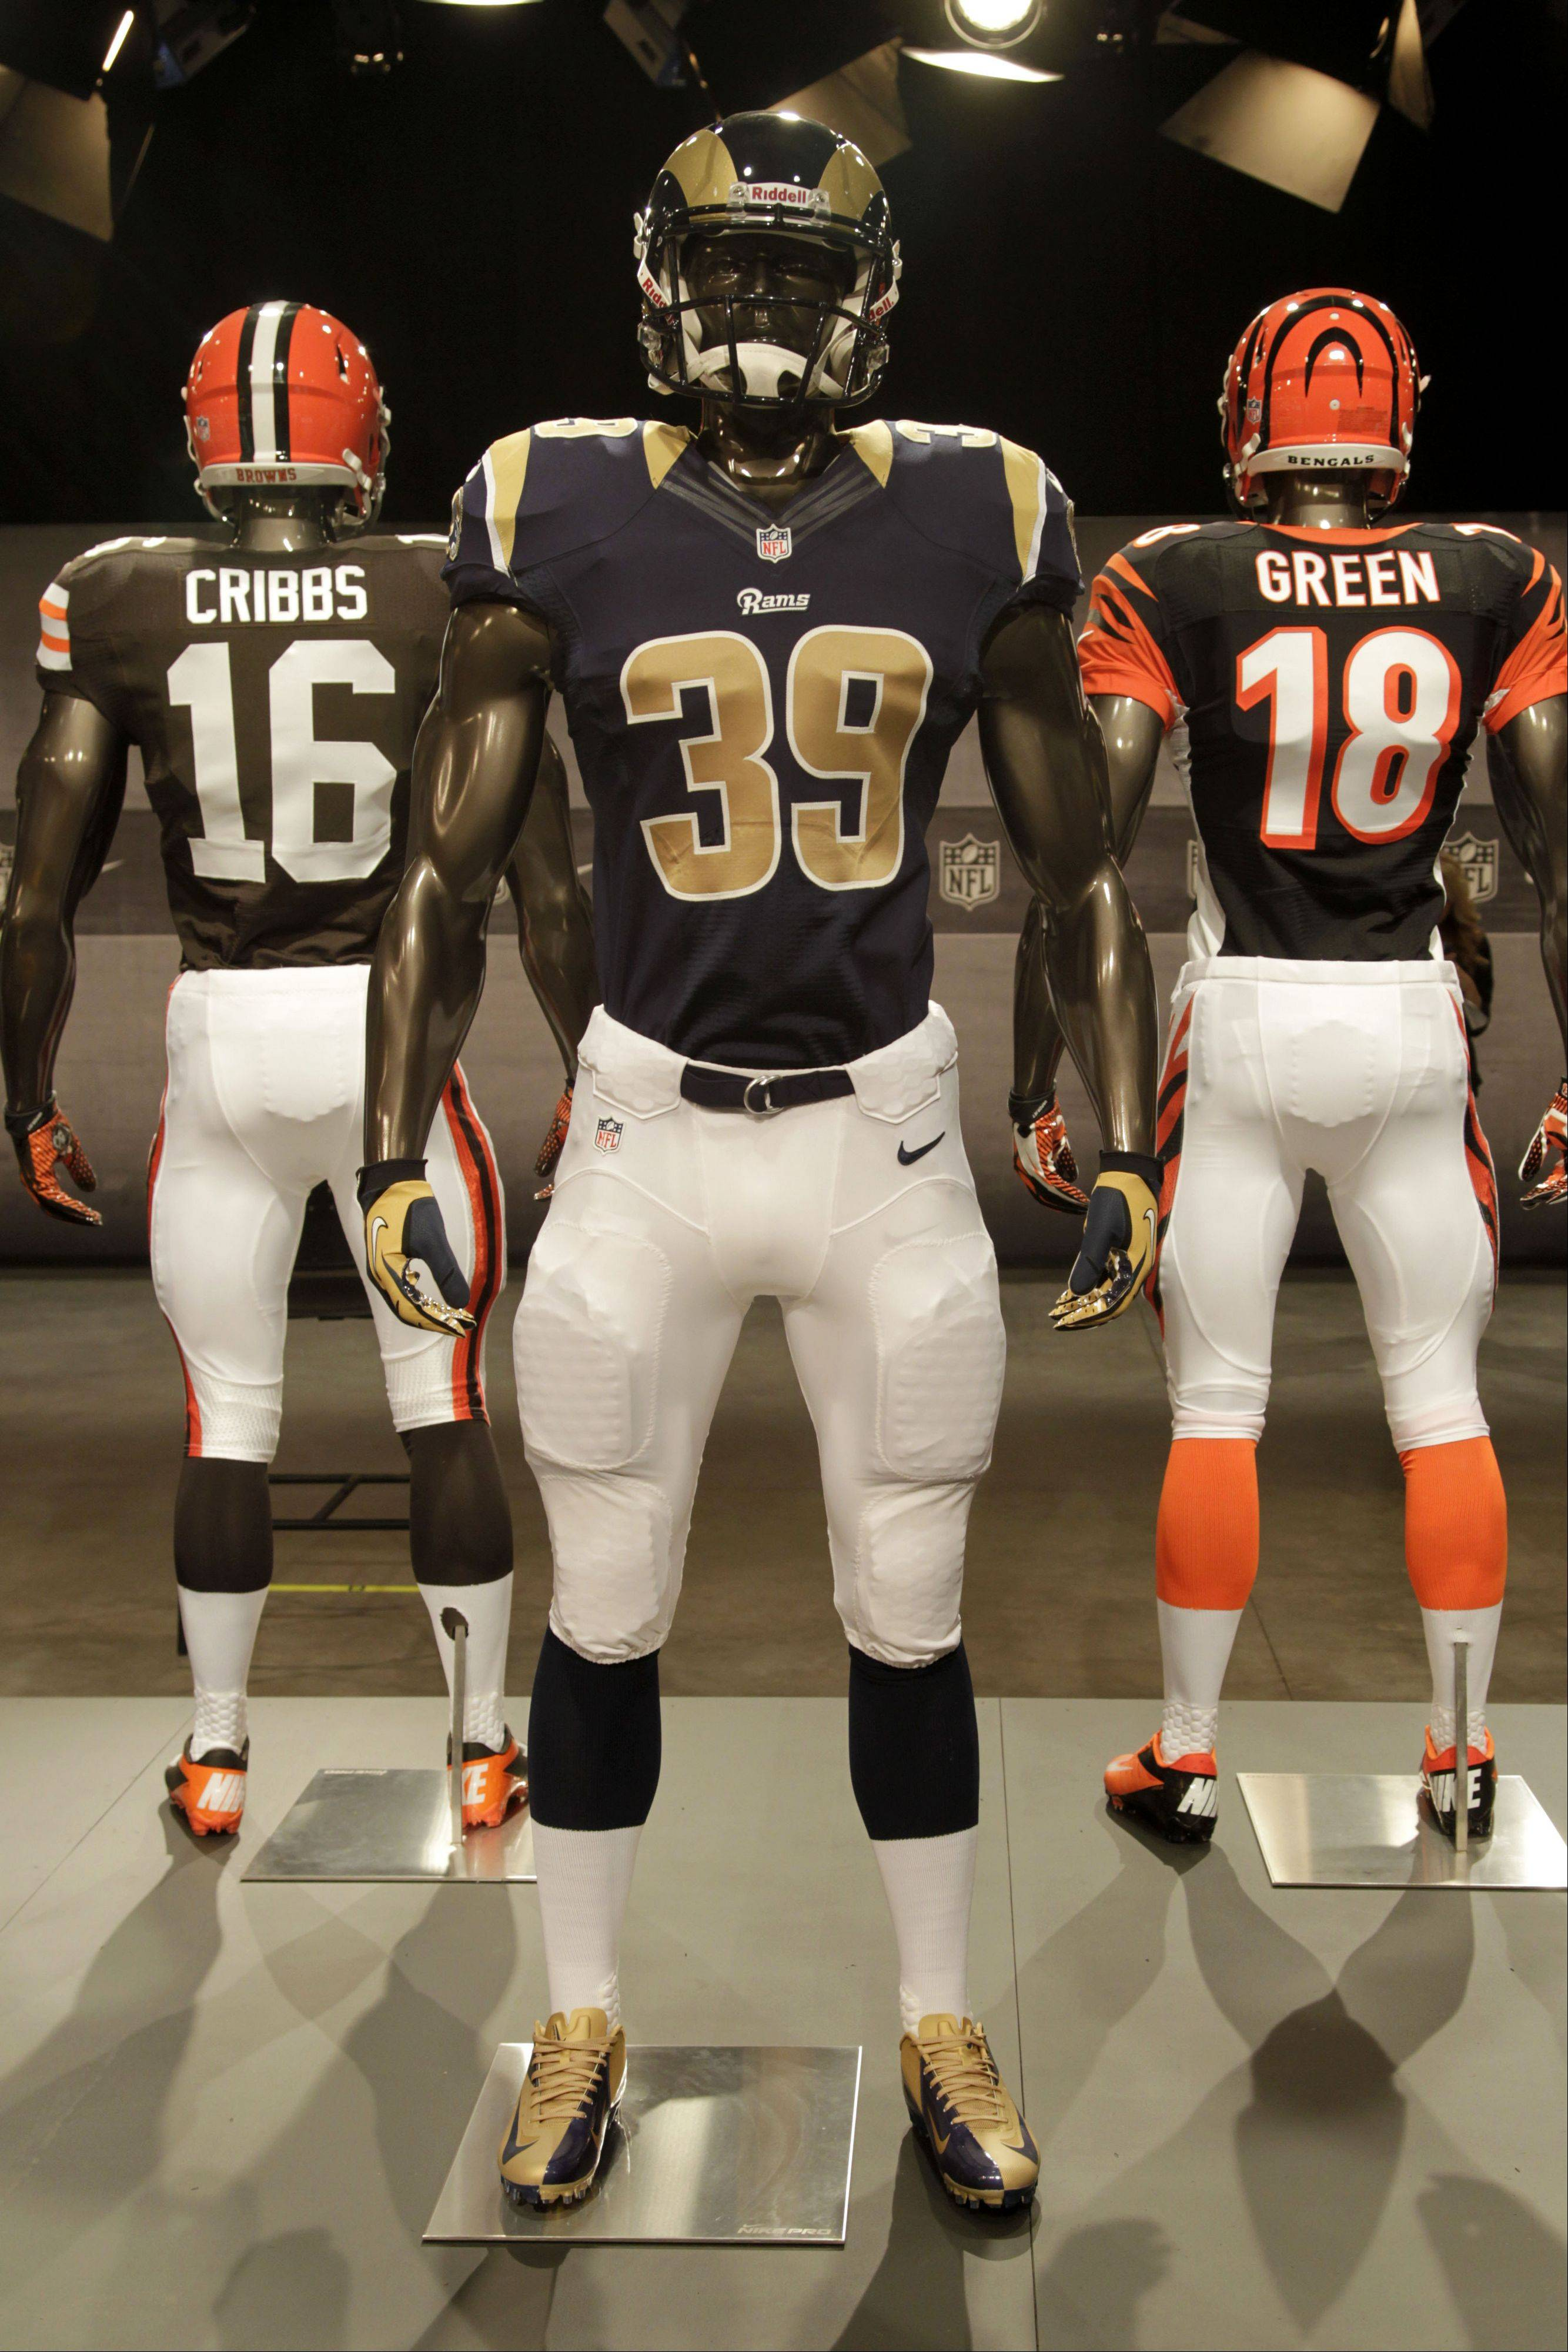 The new St. Louis Rams uniform is displayed on a mannequin in New York, Tuesday, April 3, 2012. NFL has unveiled its new sleek uniforms designed by Nike. While most of the new uniforms are not very different visually, they all are made with new technology that make them lighter, dryer and more comfortable.